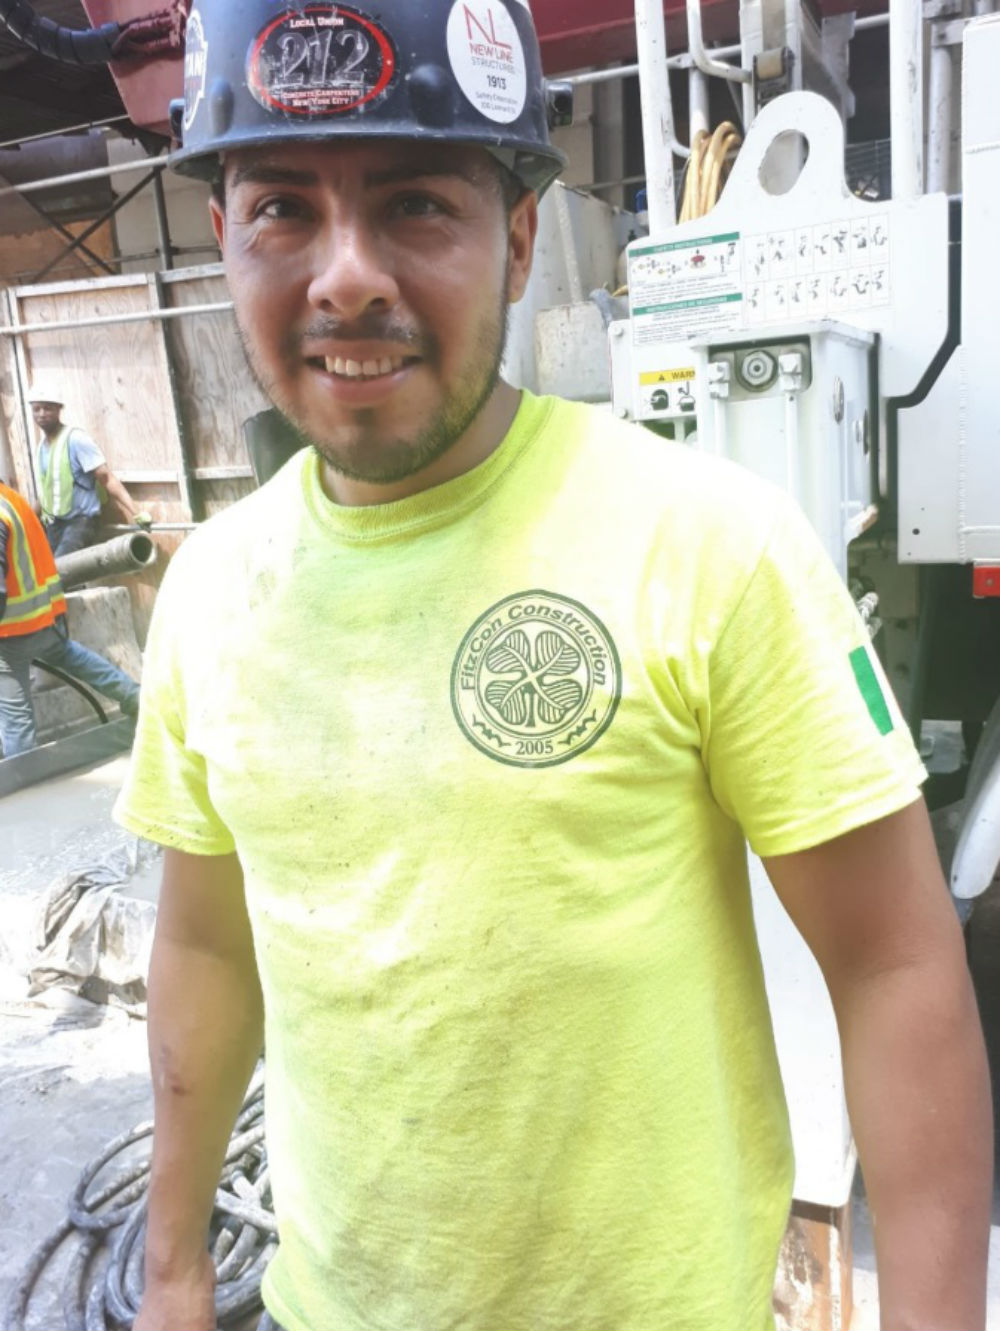 Builder comes across replica four leaf clover logo on construction site of his favoured club-Scottish Football News